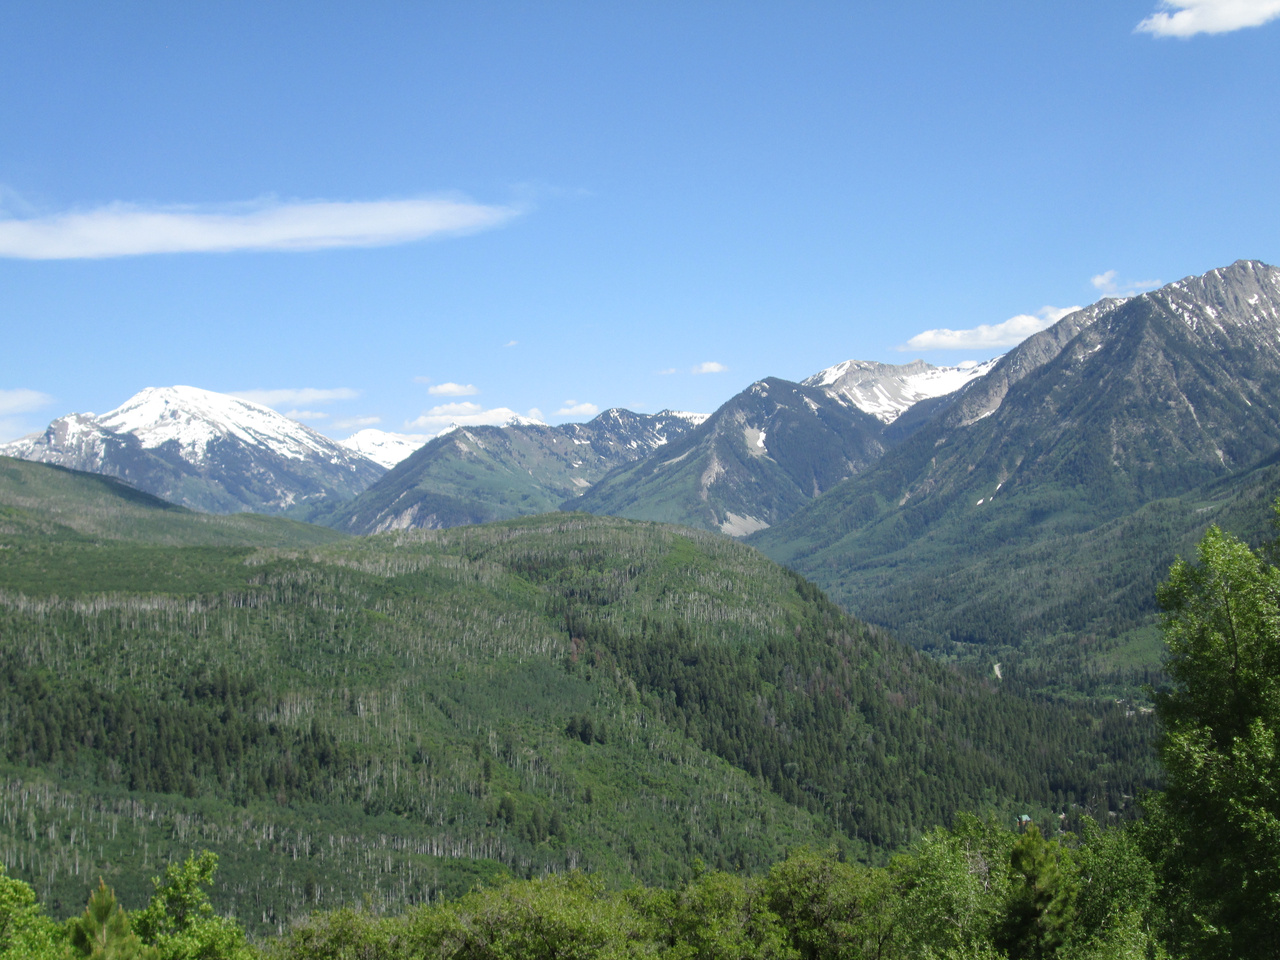 As in other locales, by June 17, 2015 snowline had retreated to treeline and above in the upper Crystal River watershed and appeared, at a distance, comparatively 'clean'.